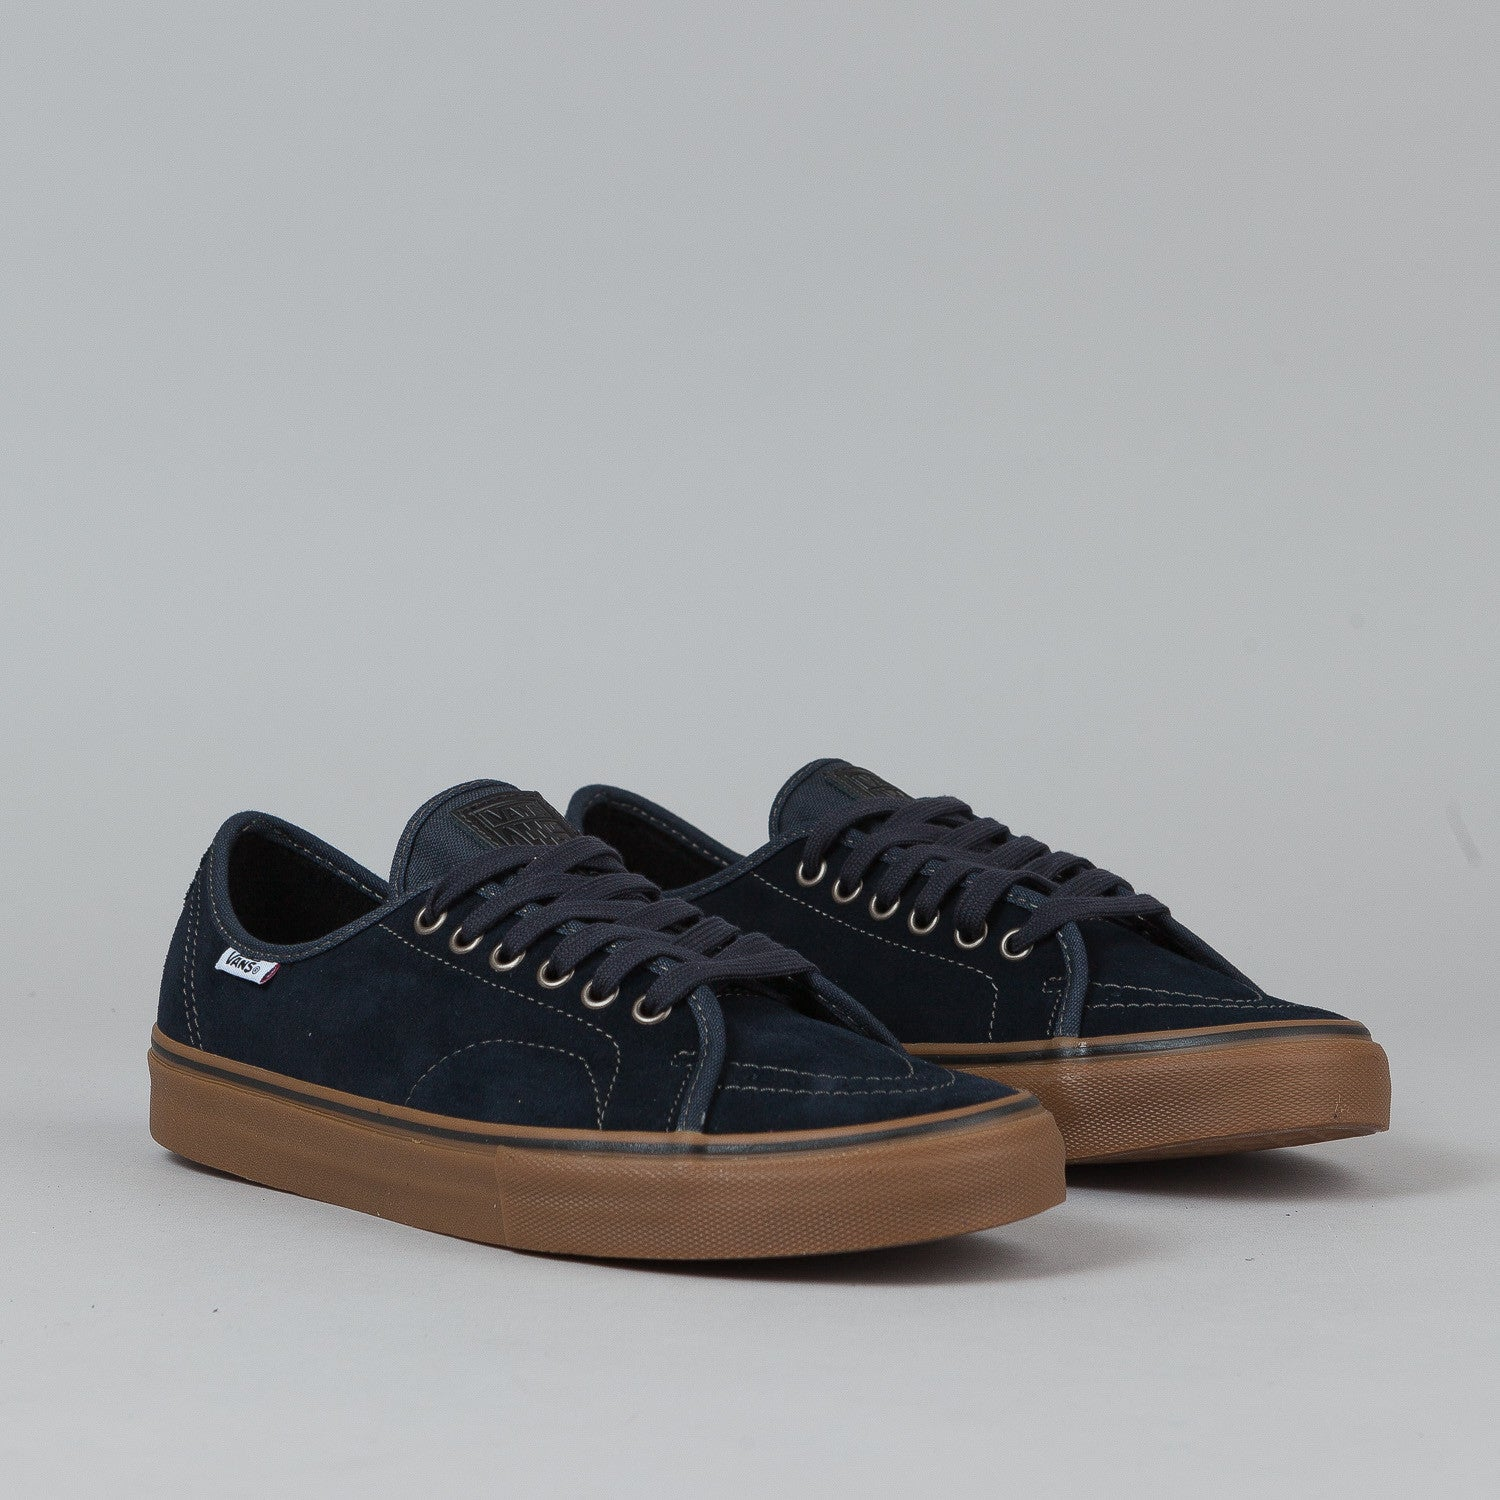 Vans AV Classic Shoes - Navy / Gum